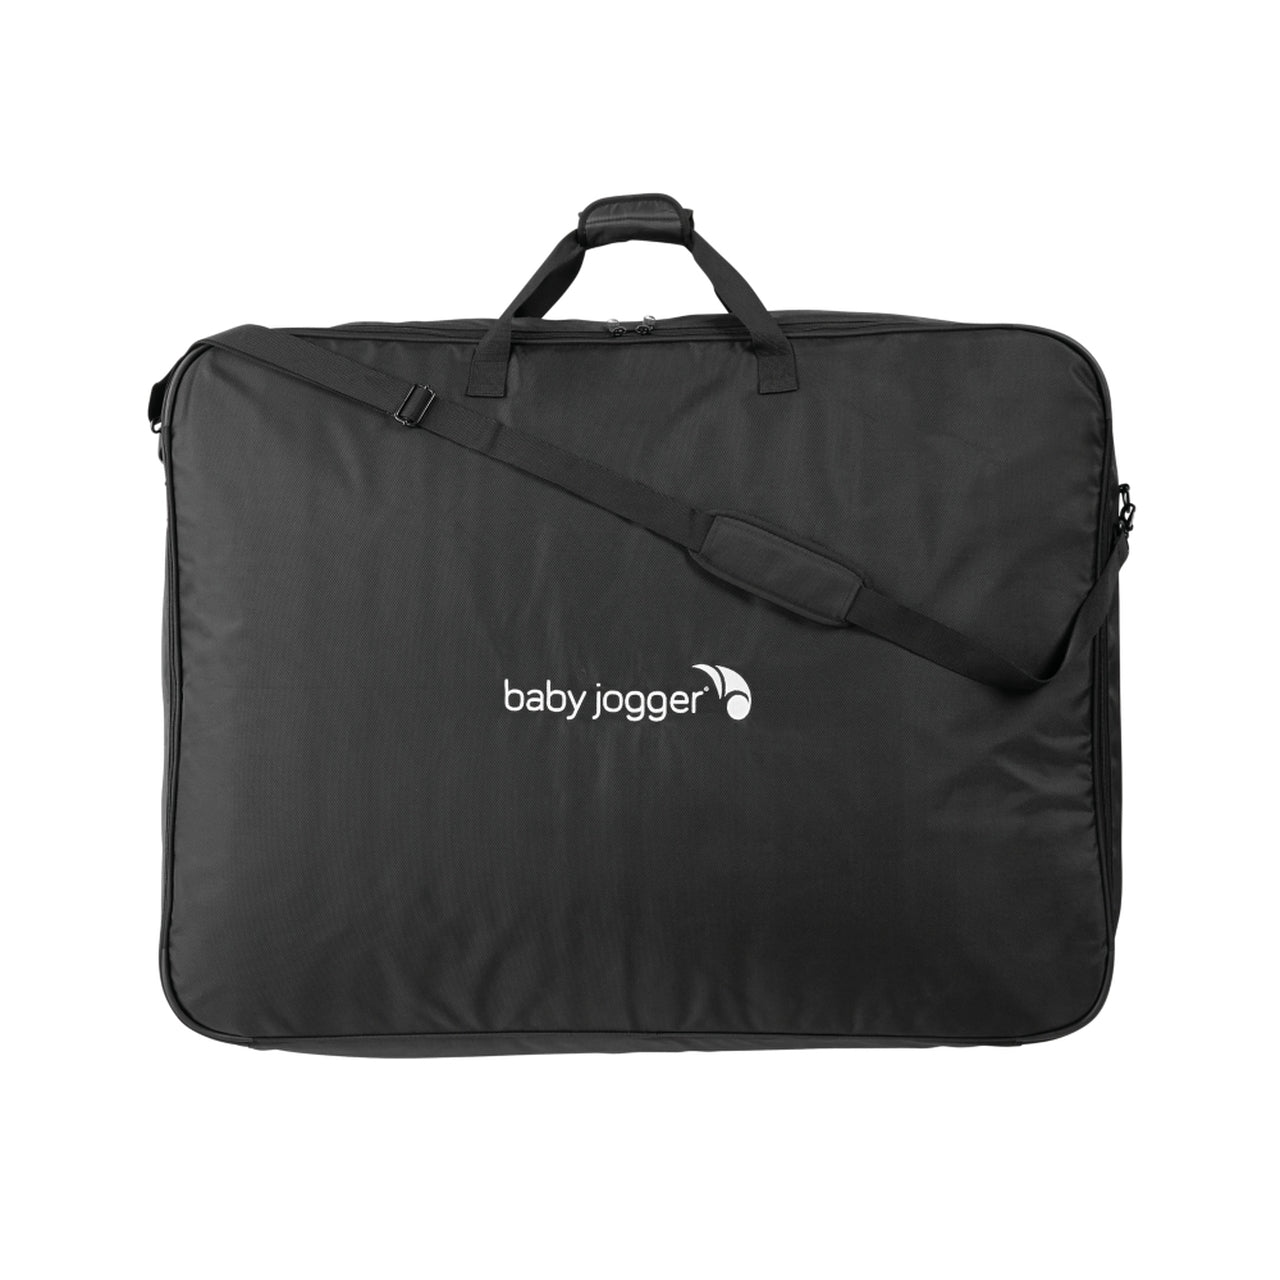 Baby Jogger Double Travel Bag Universal